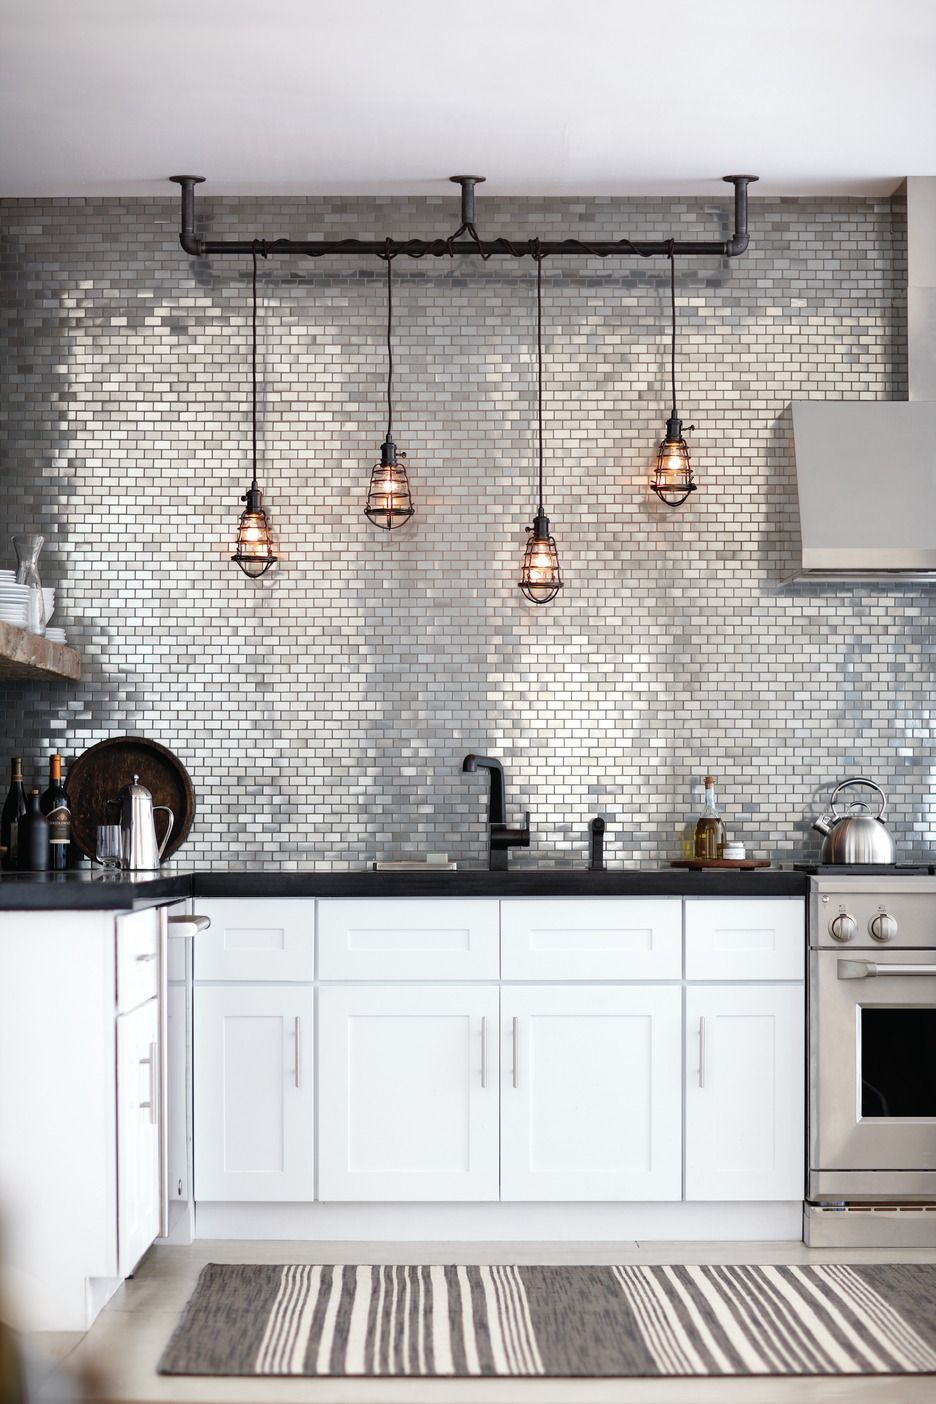 Love how these tiles add a touch of glamour to the space. And those ...